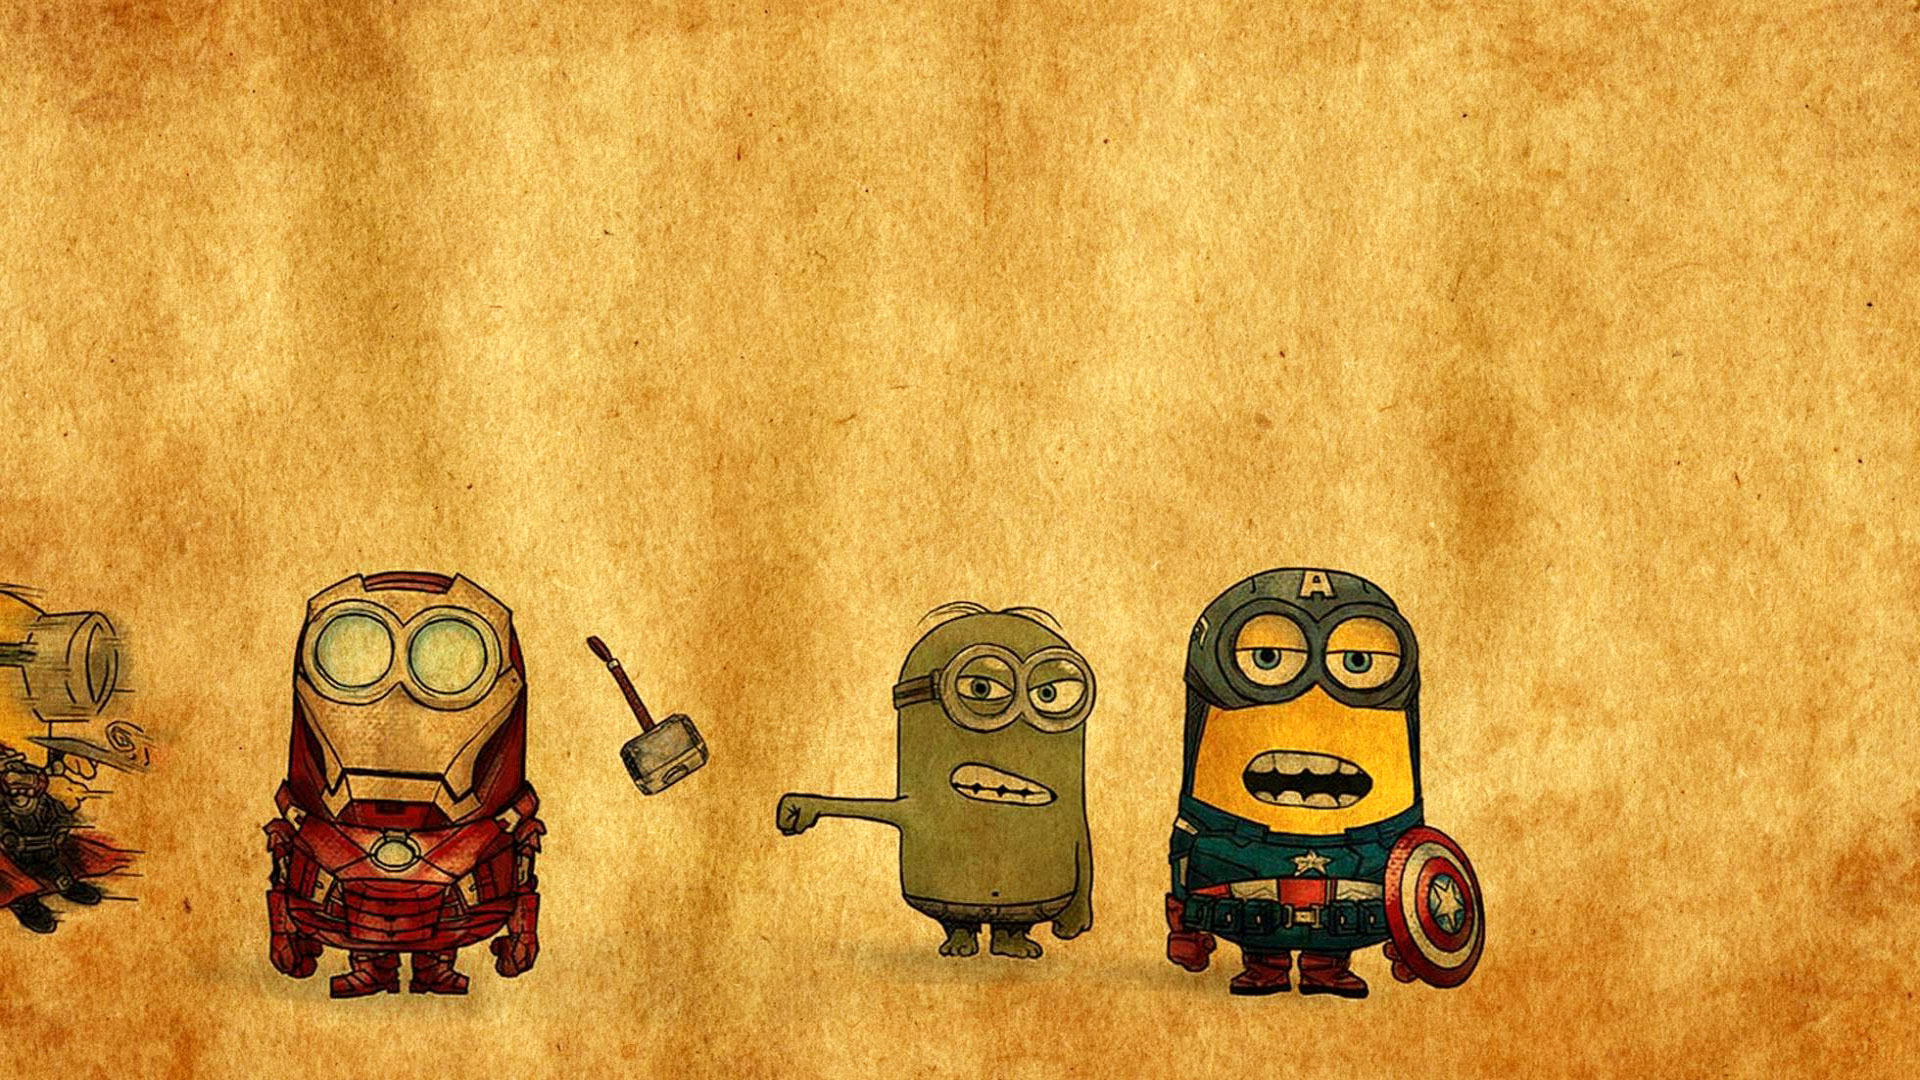 Minions-Avengers-Drawing-exclusive-HD-for-Desktop-background-Iphone-Ipad-and-and-wallpaper-wpc9007678